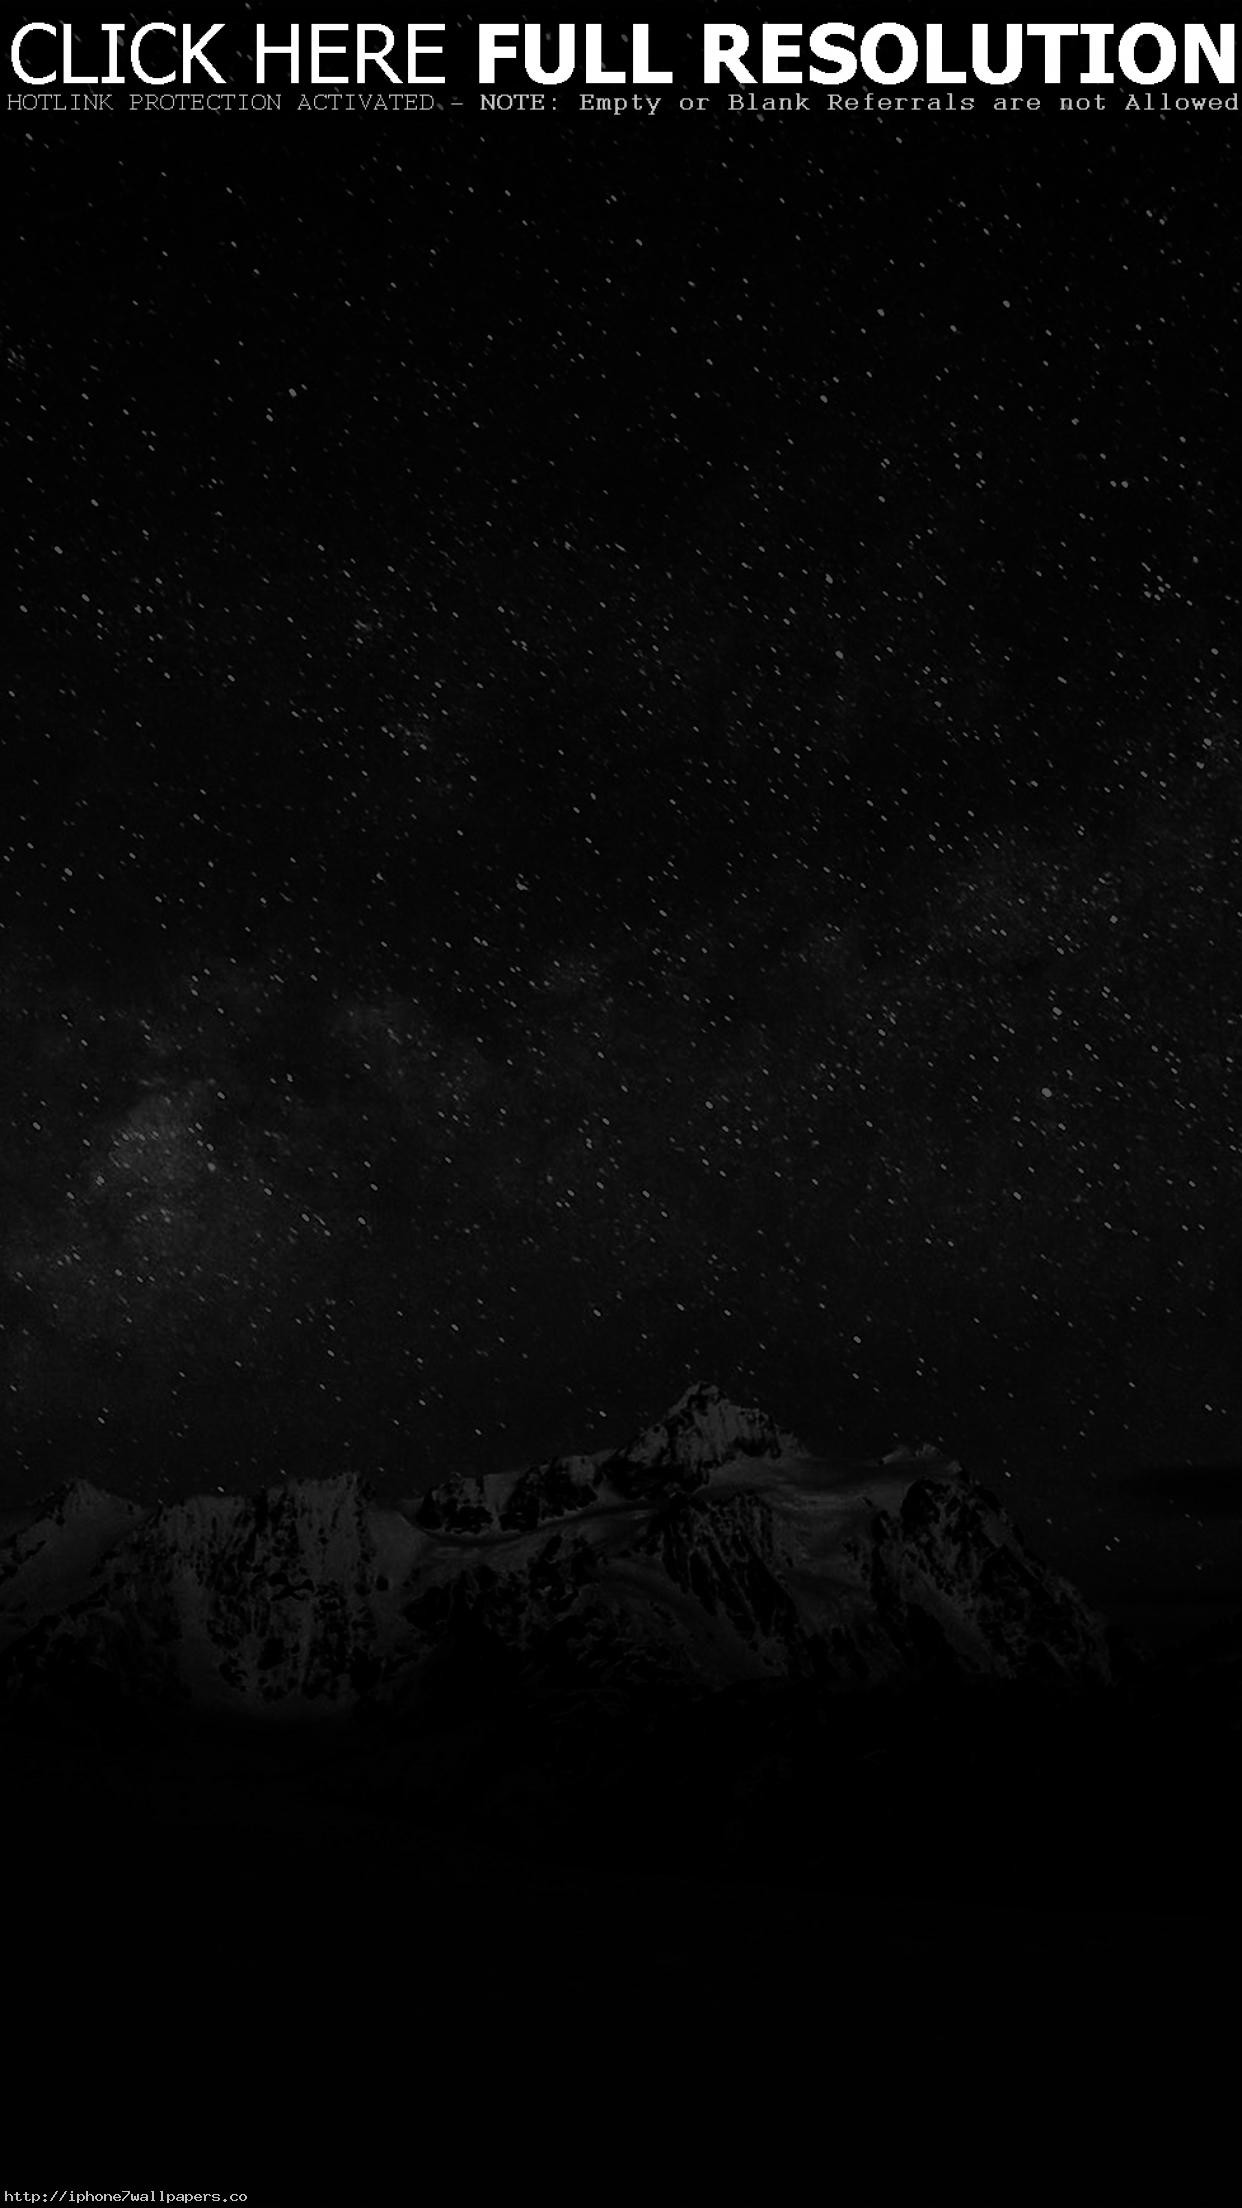 Starry Night Sky Mountain Nature Bw Dark Android wallpaper – Android HD  wallpapers